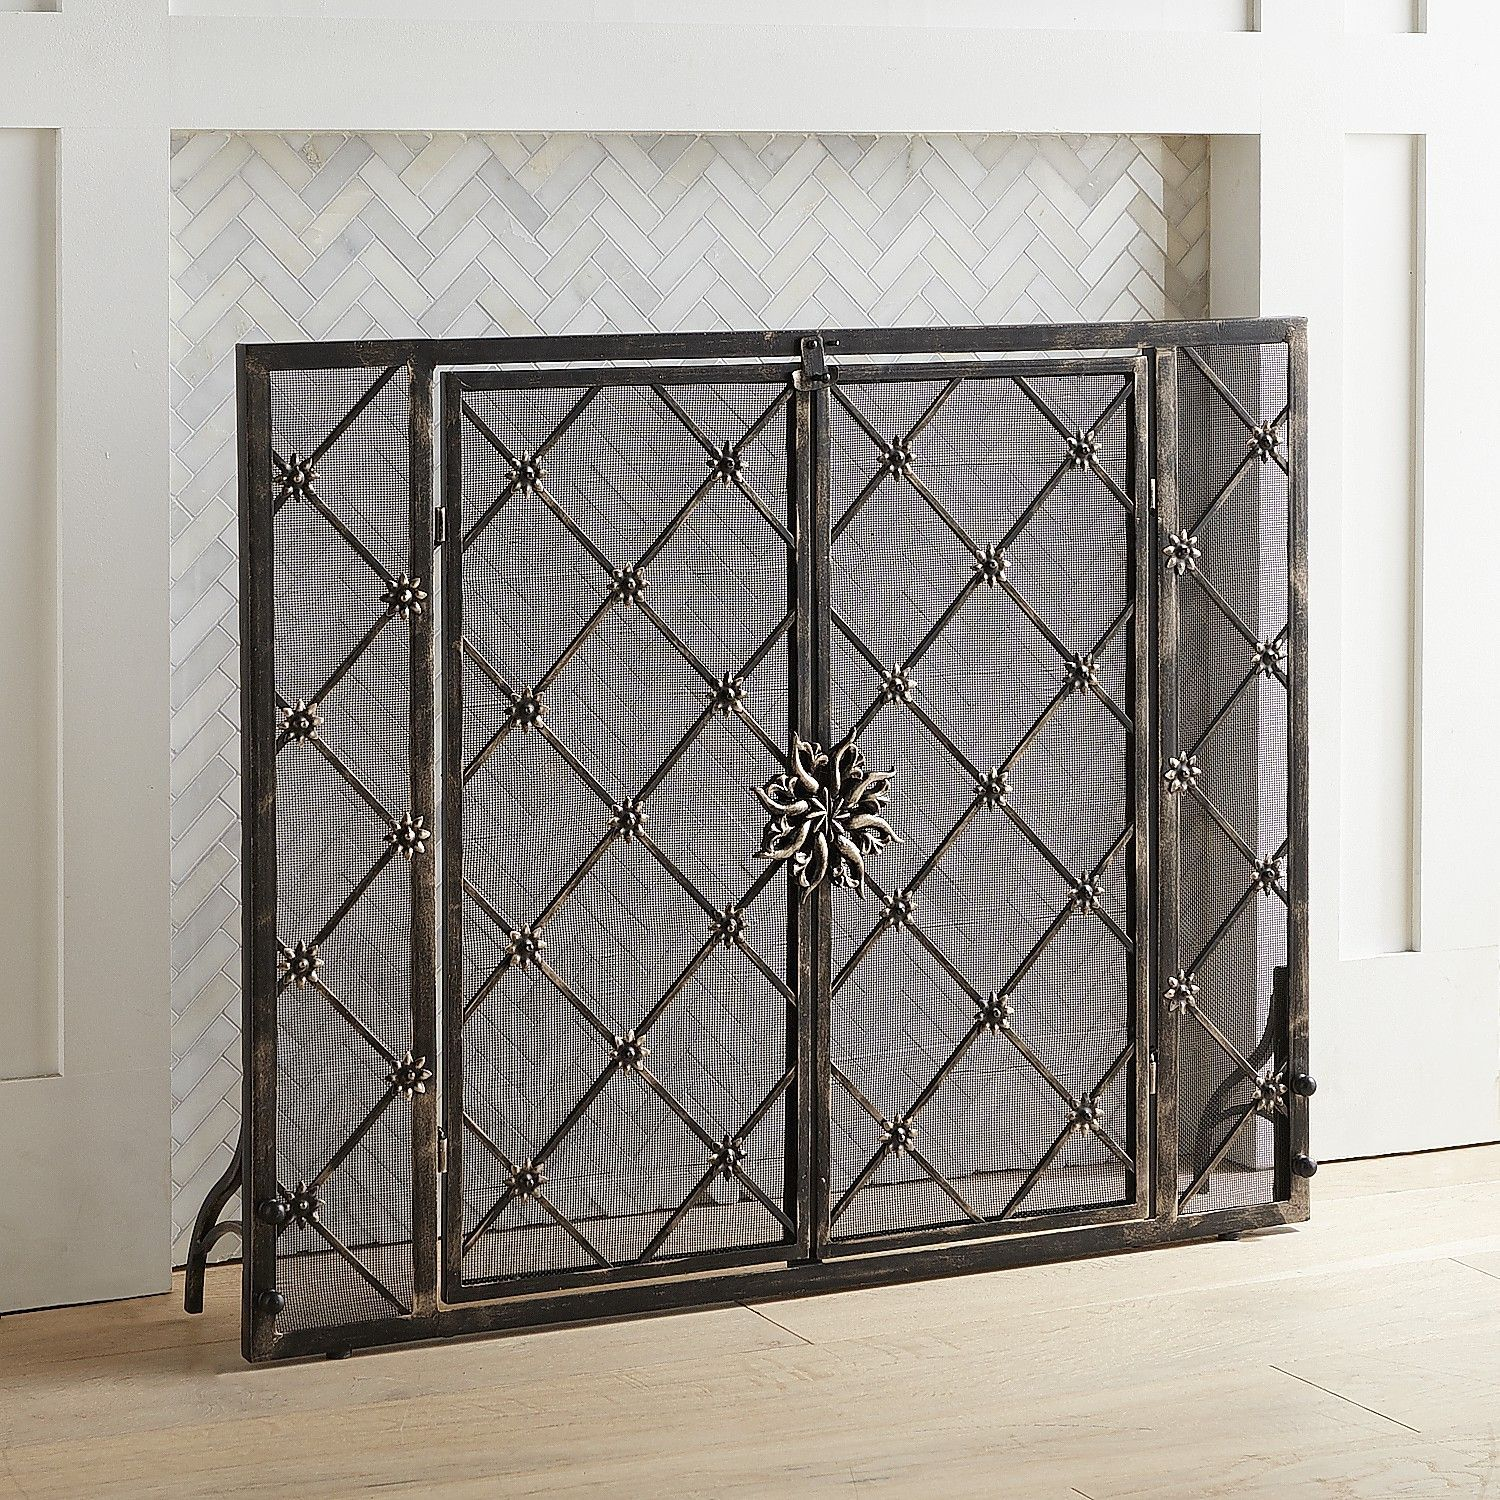 Fireplace Screen Material Elegant Junction Fireplace Screen In 2019 Products